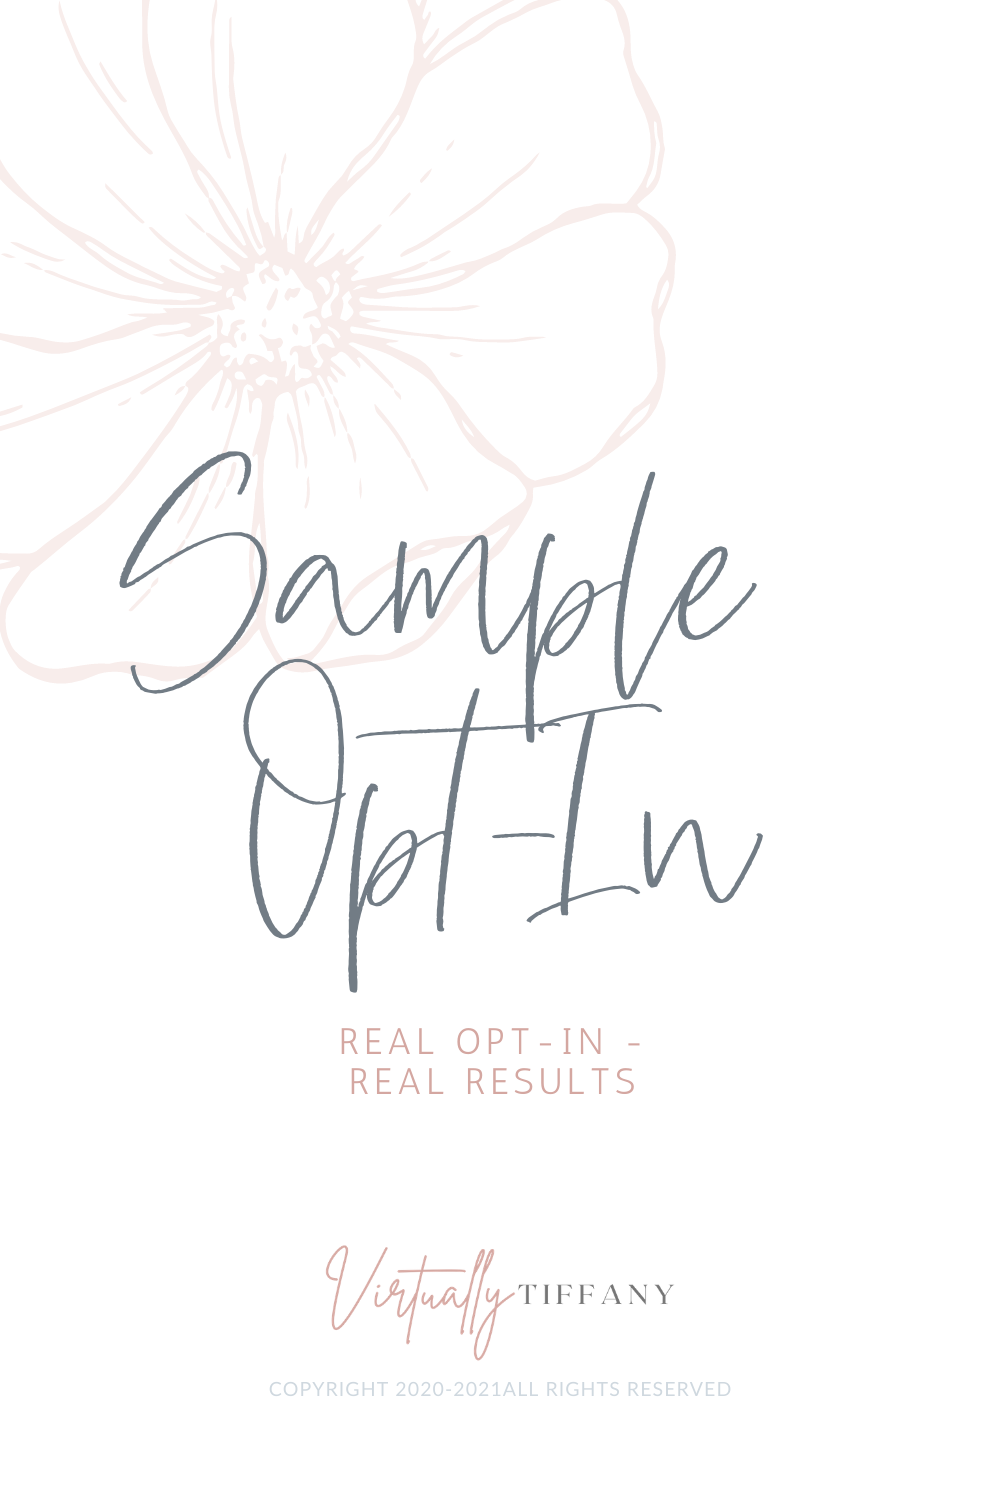 Sample Opt-in